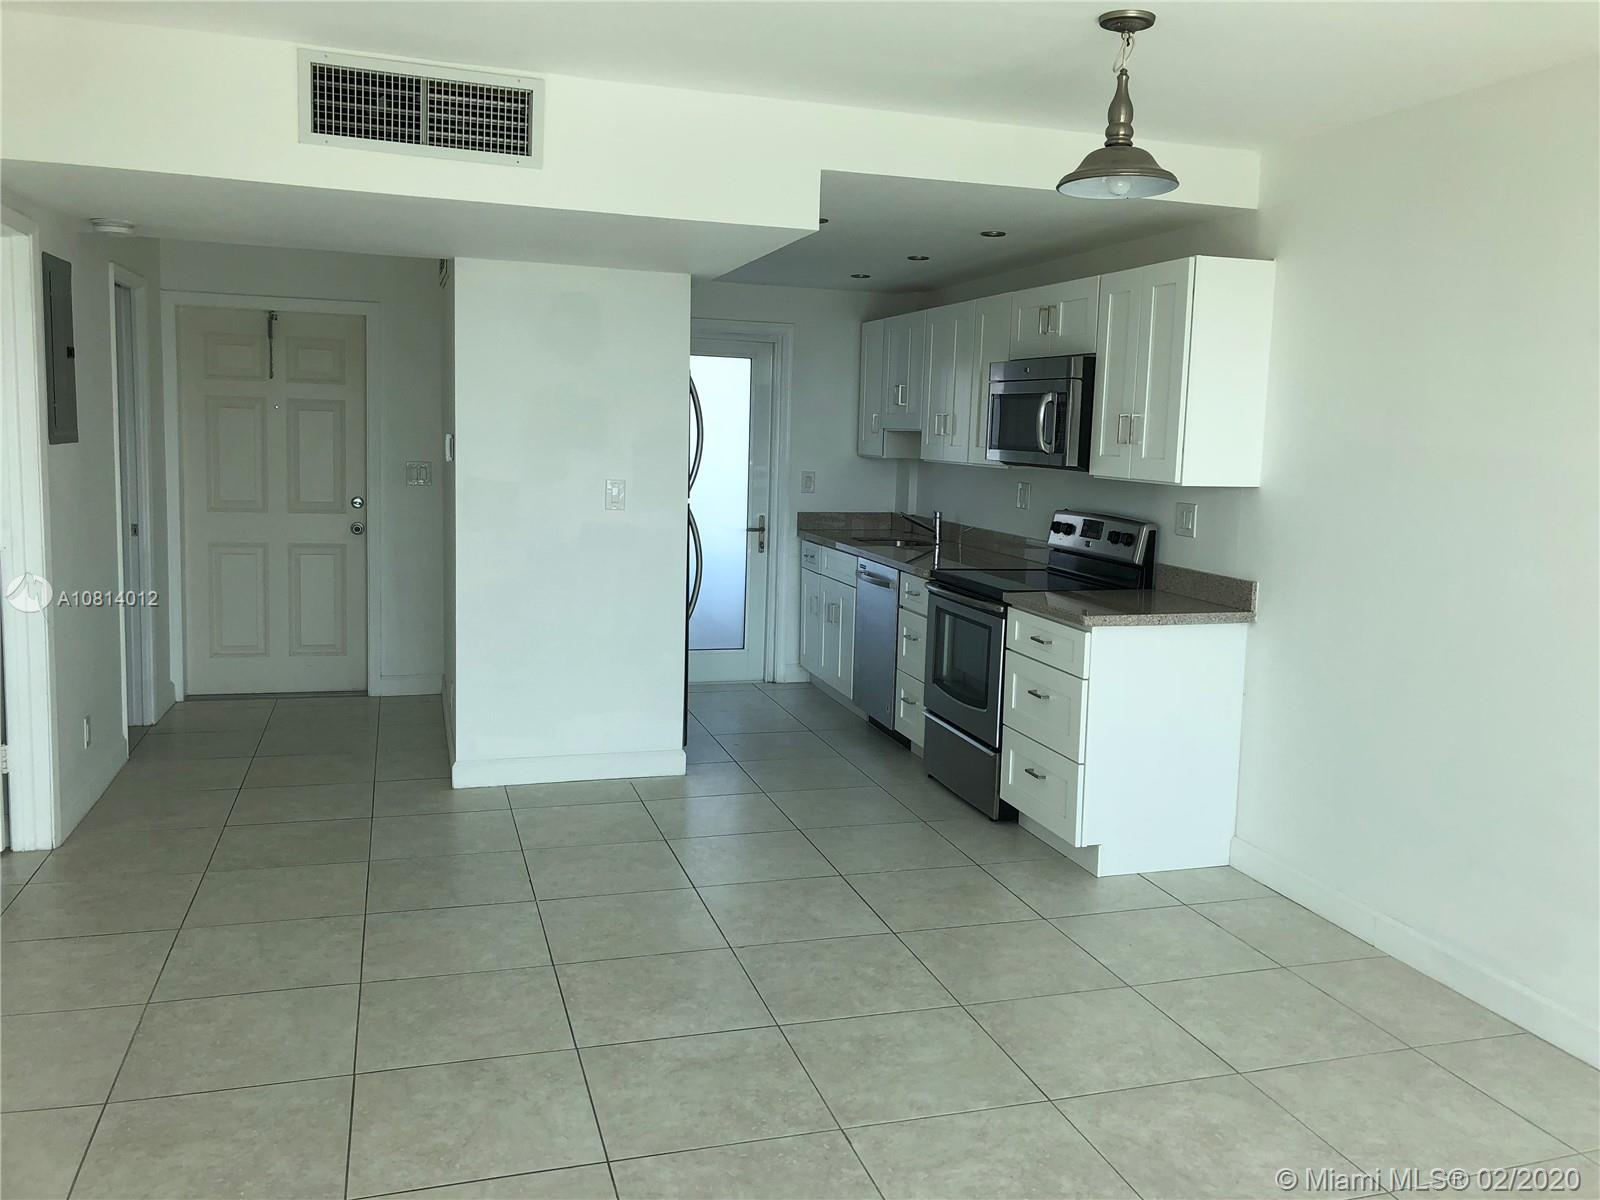 Excellent location, remodeled unit with a direct ocean and beach views and great updated amenities . Stainless steel appliances, tankless water heather, new AC and tile floors.